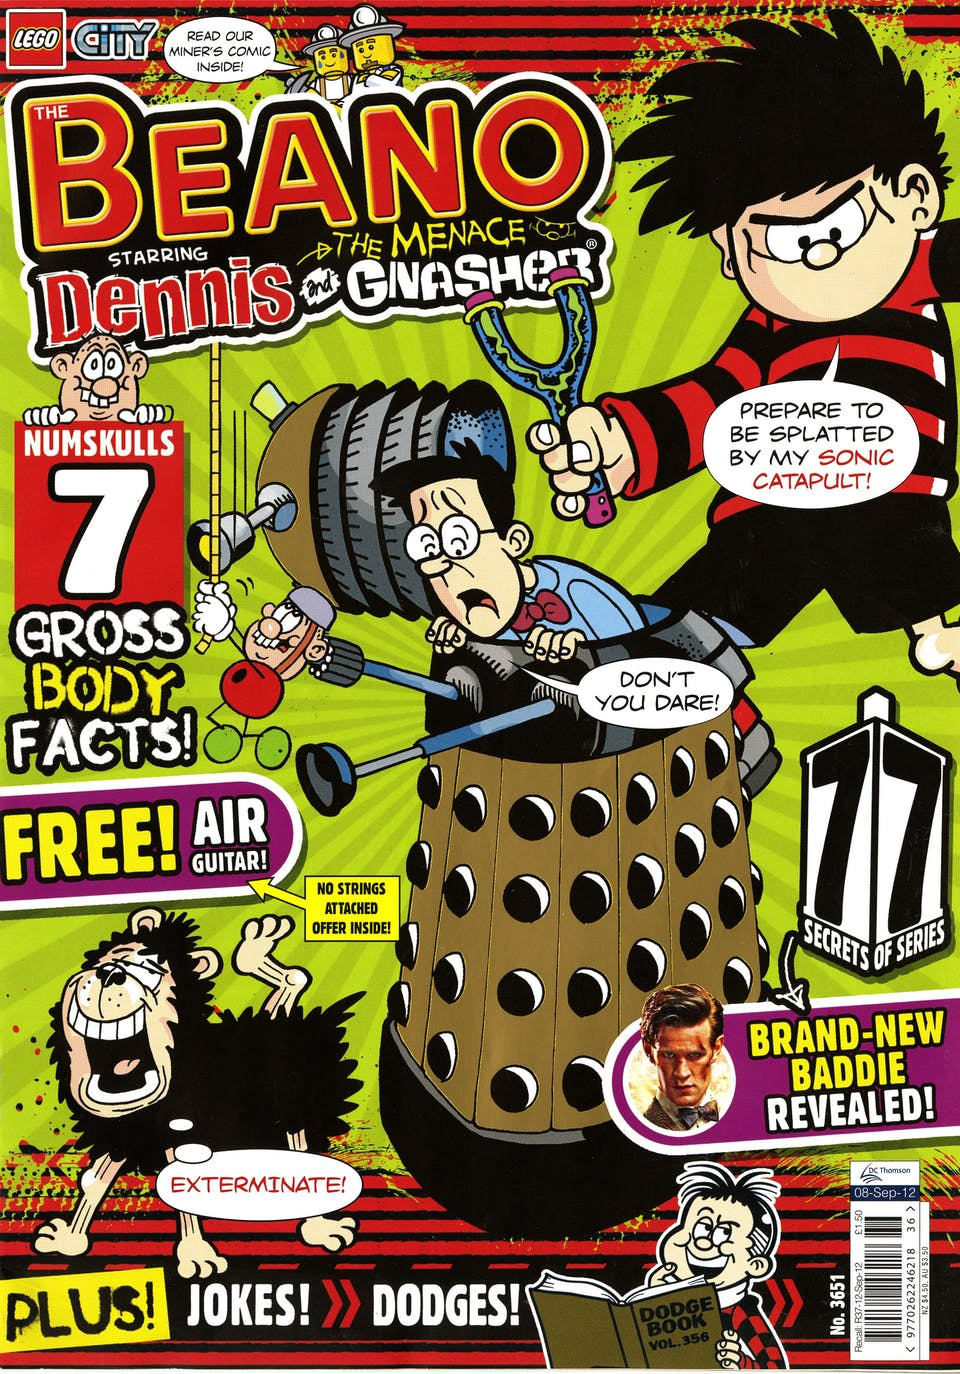 Walter and Dennis appear on the Doctor Who-themed cover of Beano issue 3651 published September 12, 2012